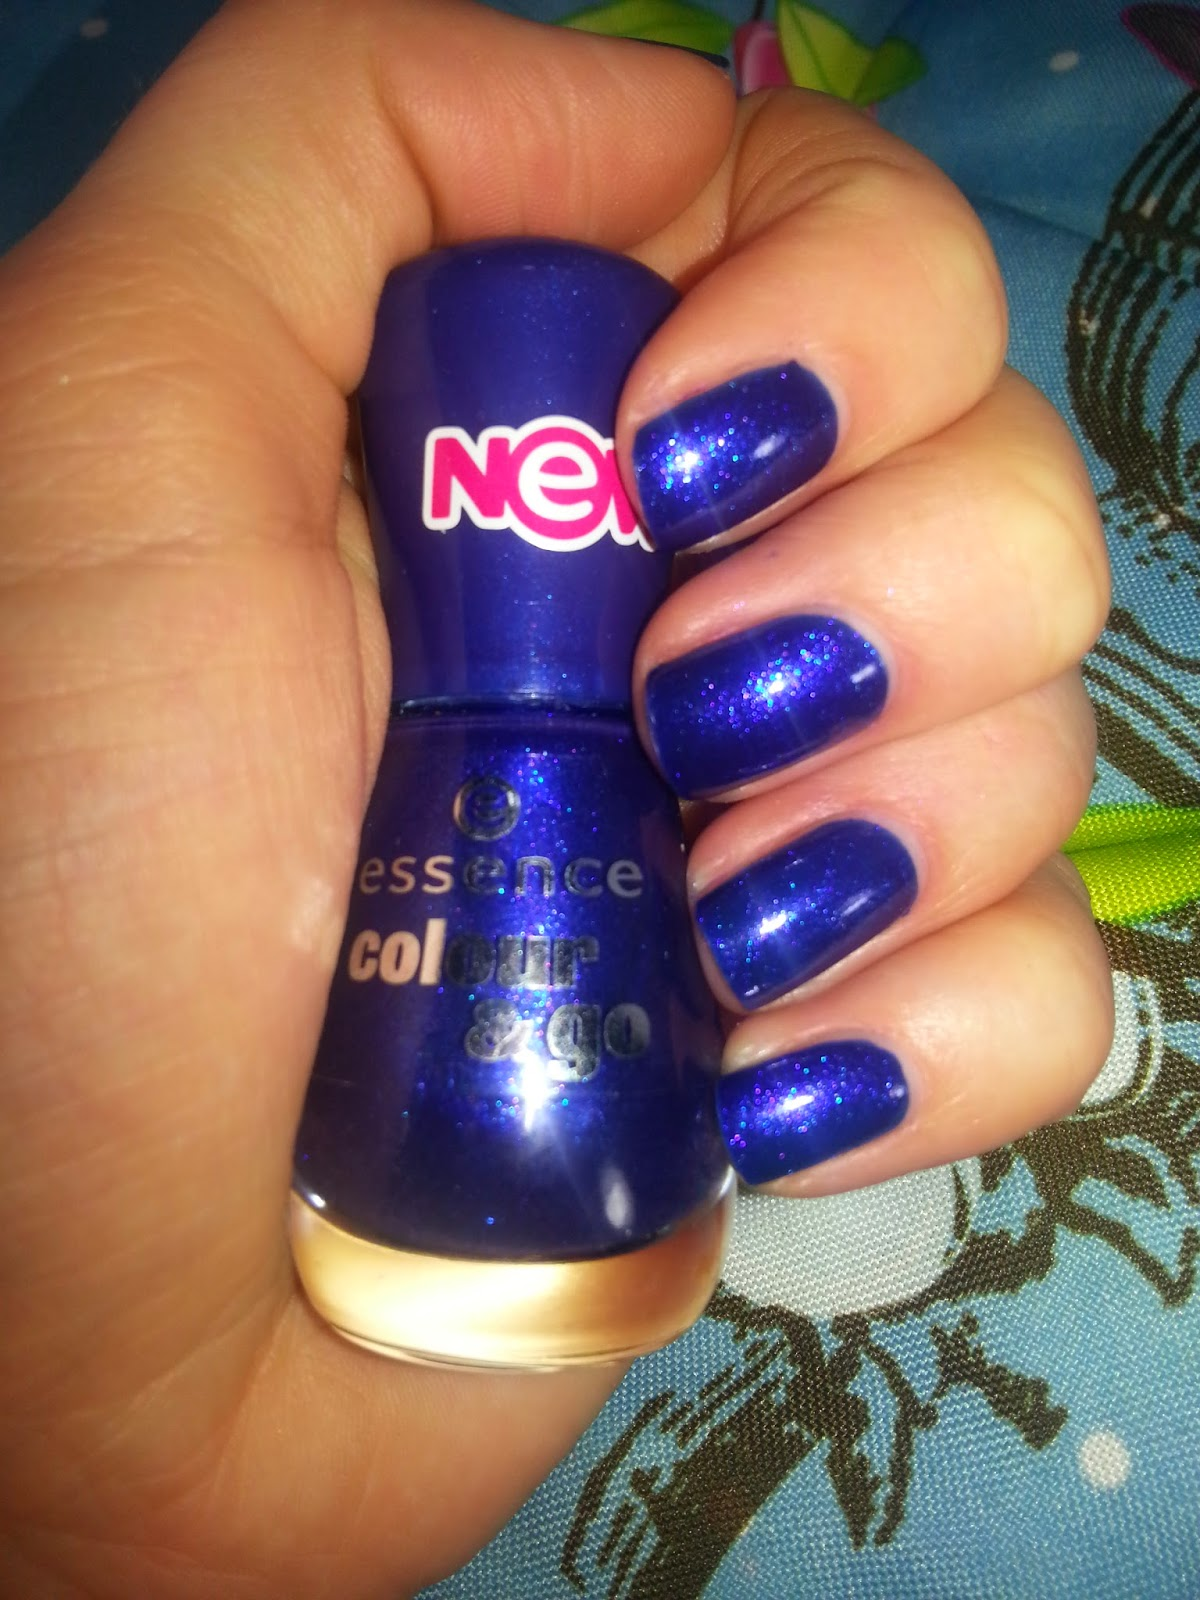 Essence Colour & Go Nagellacke it's raining men! Tragebild - www.annitschkasblog.de